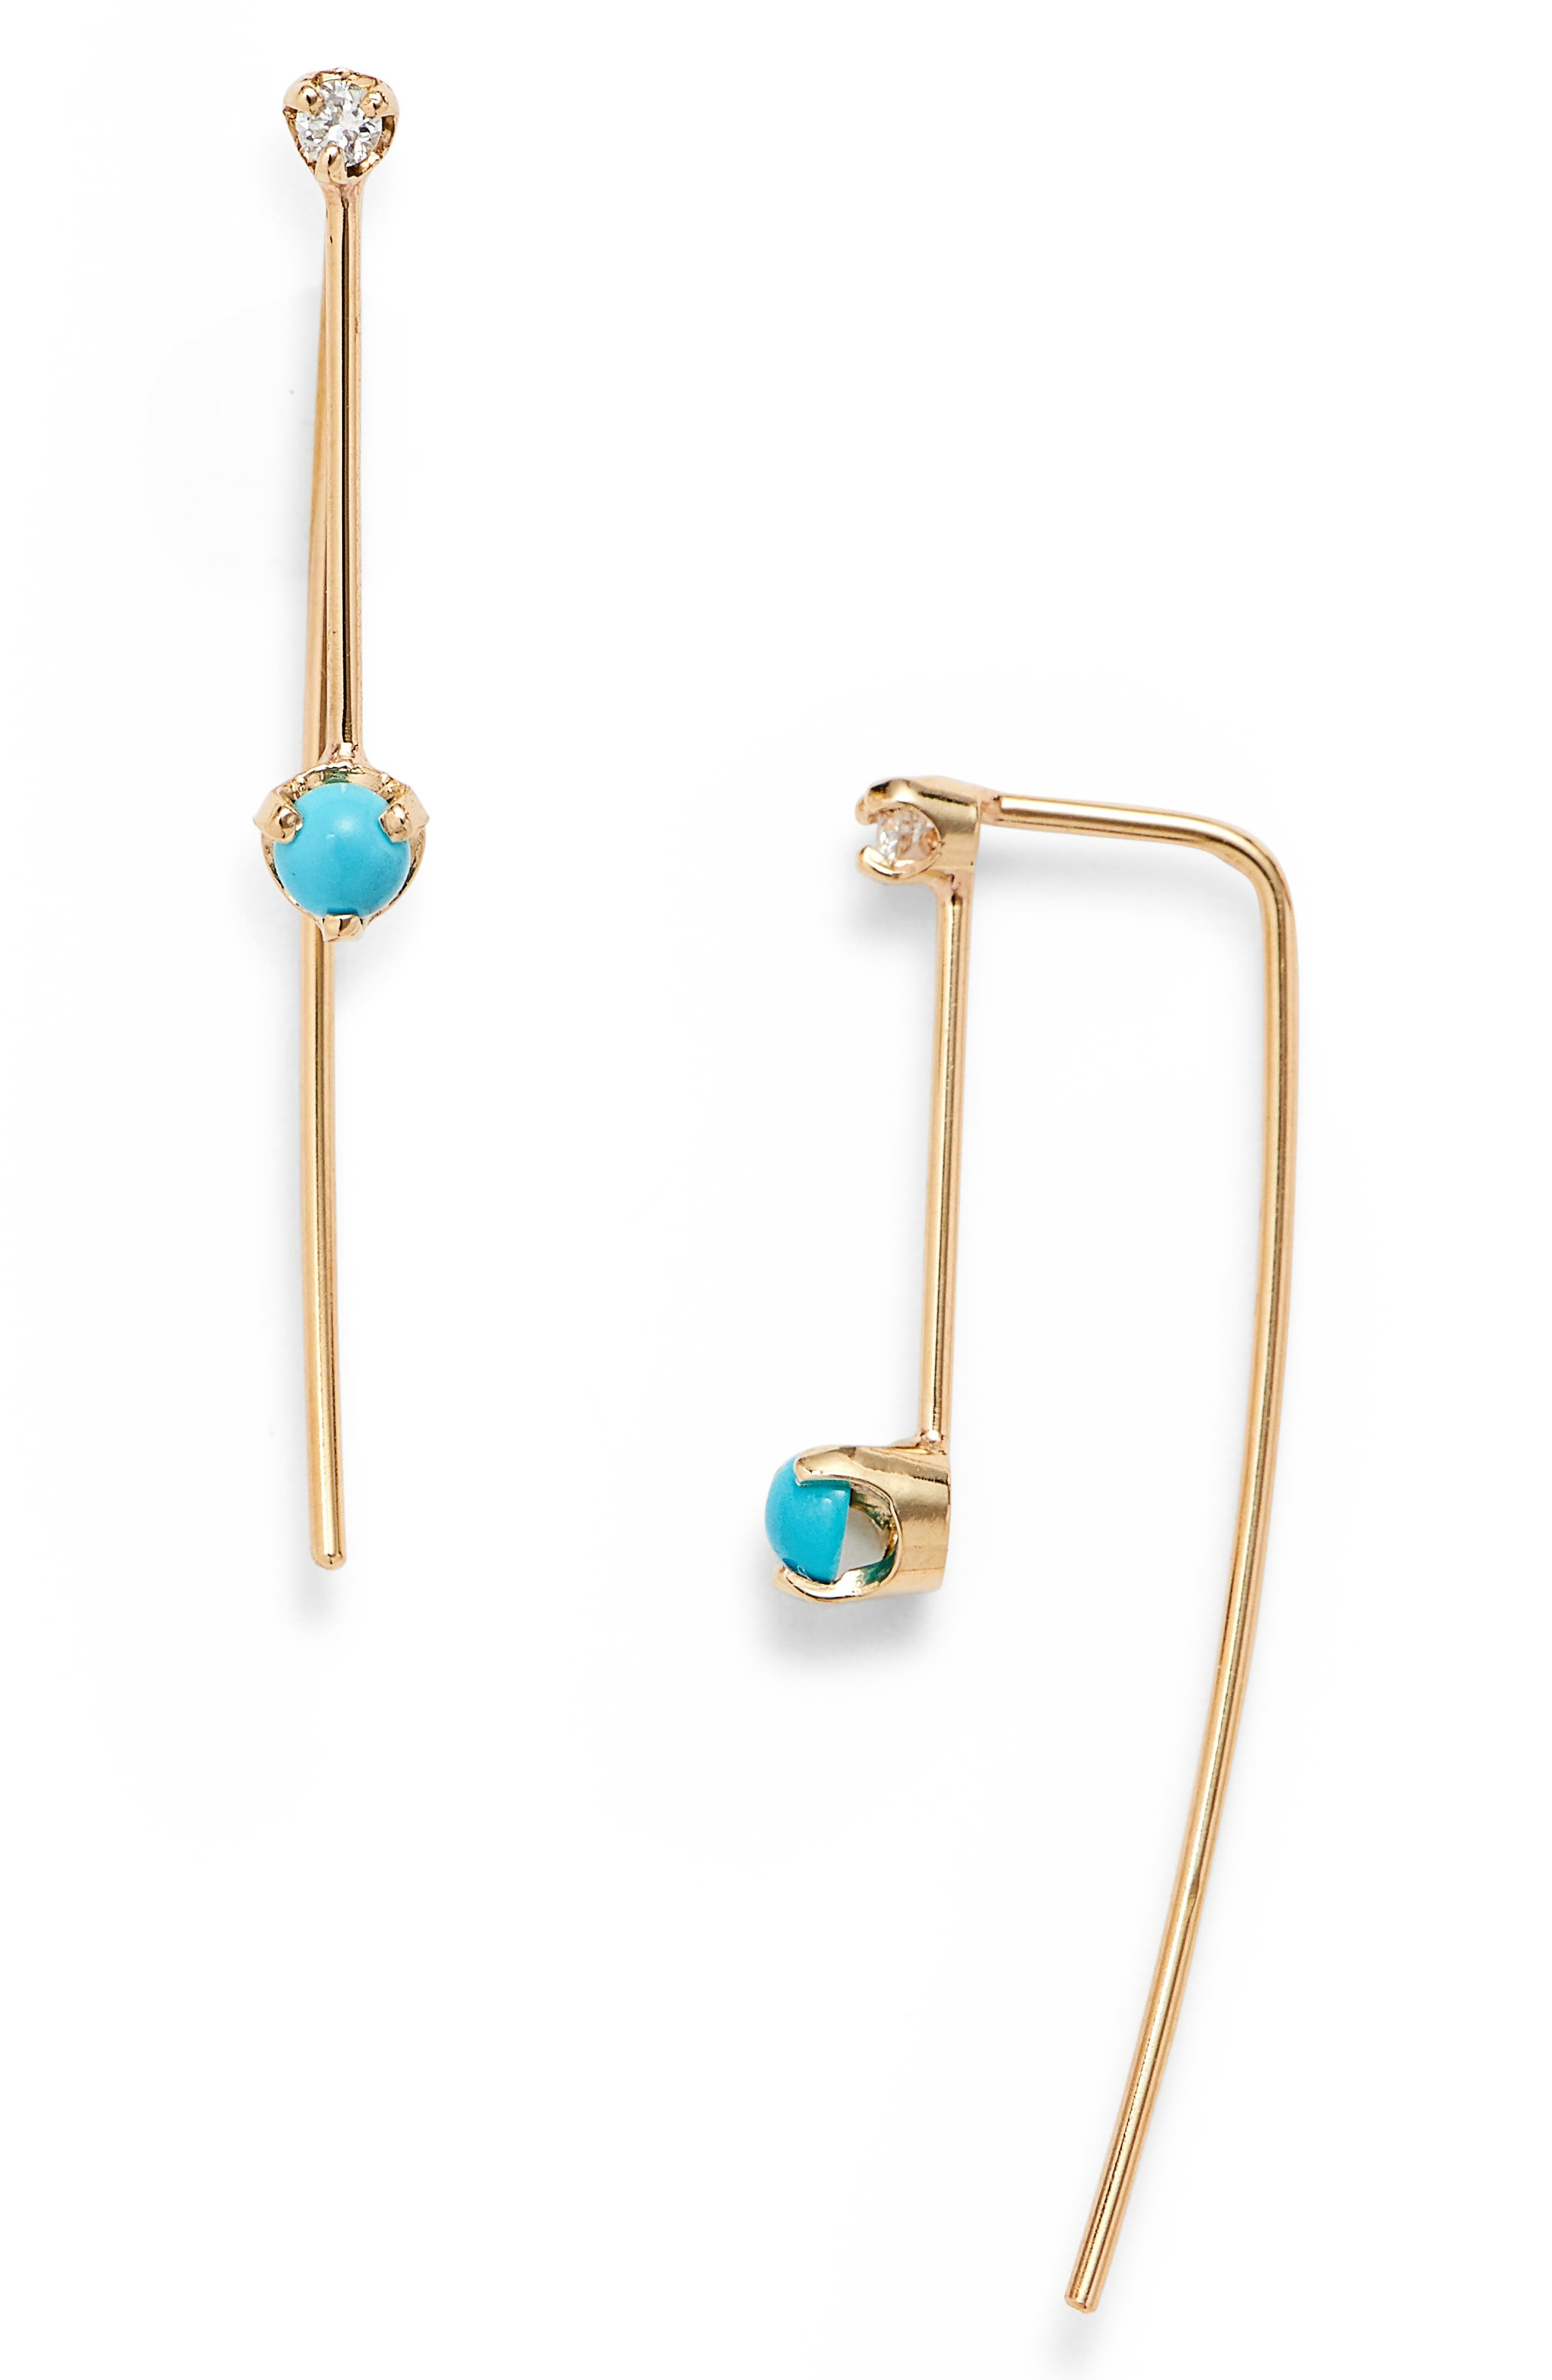 ZOË CHICCO Turquoise & Diamond Threader Earrings, Main, color, YELLOW GOLD